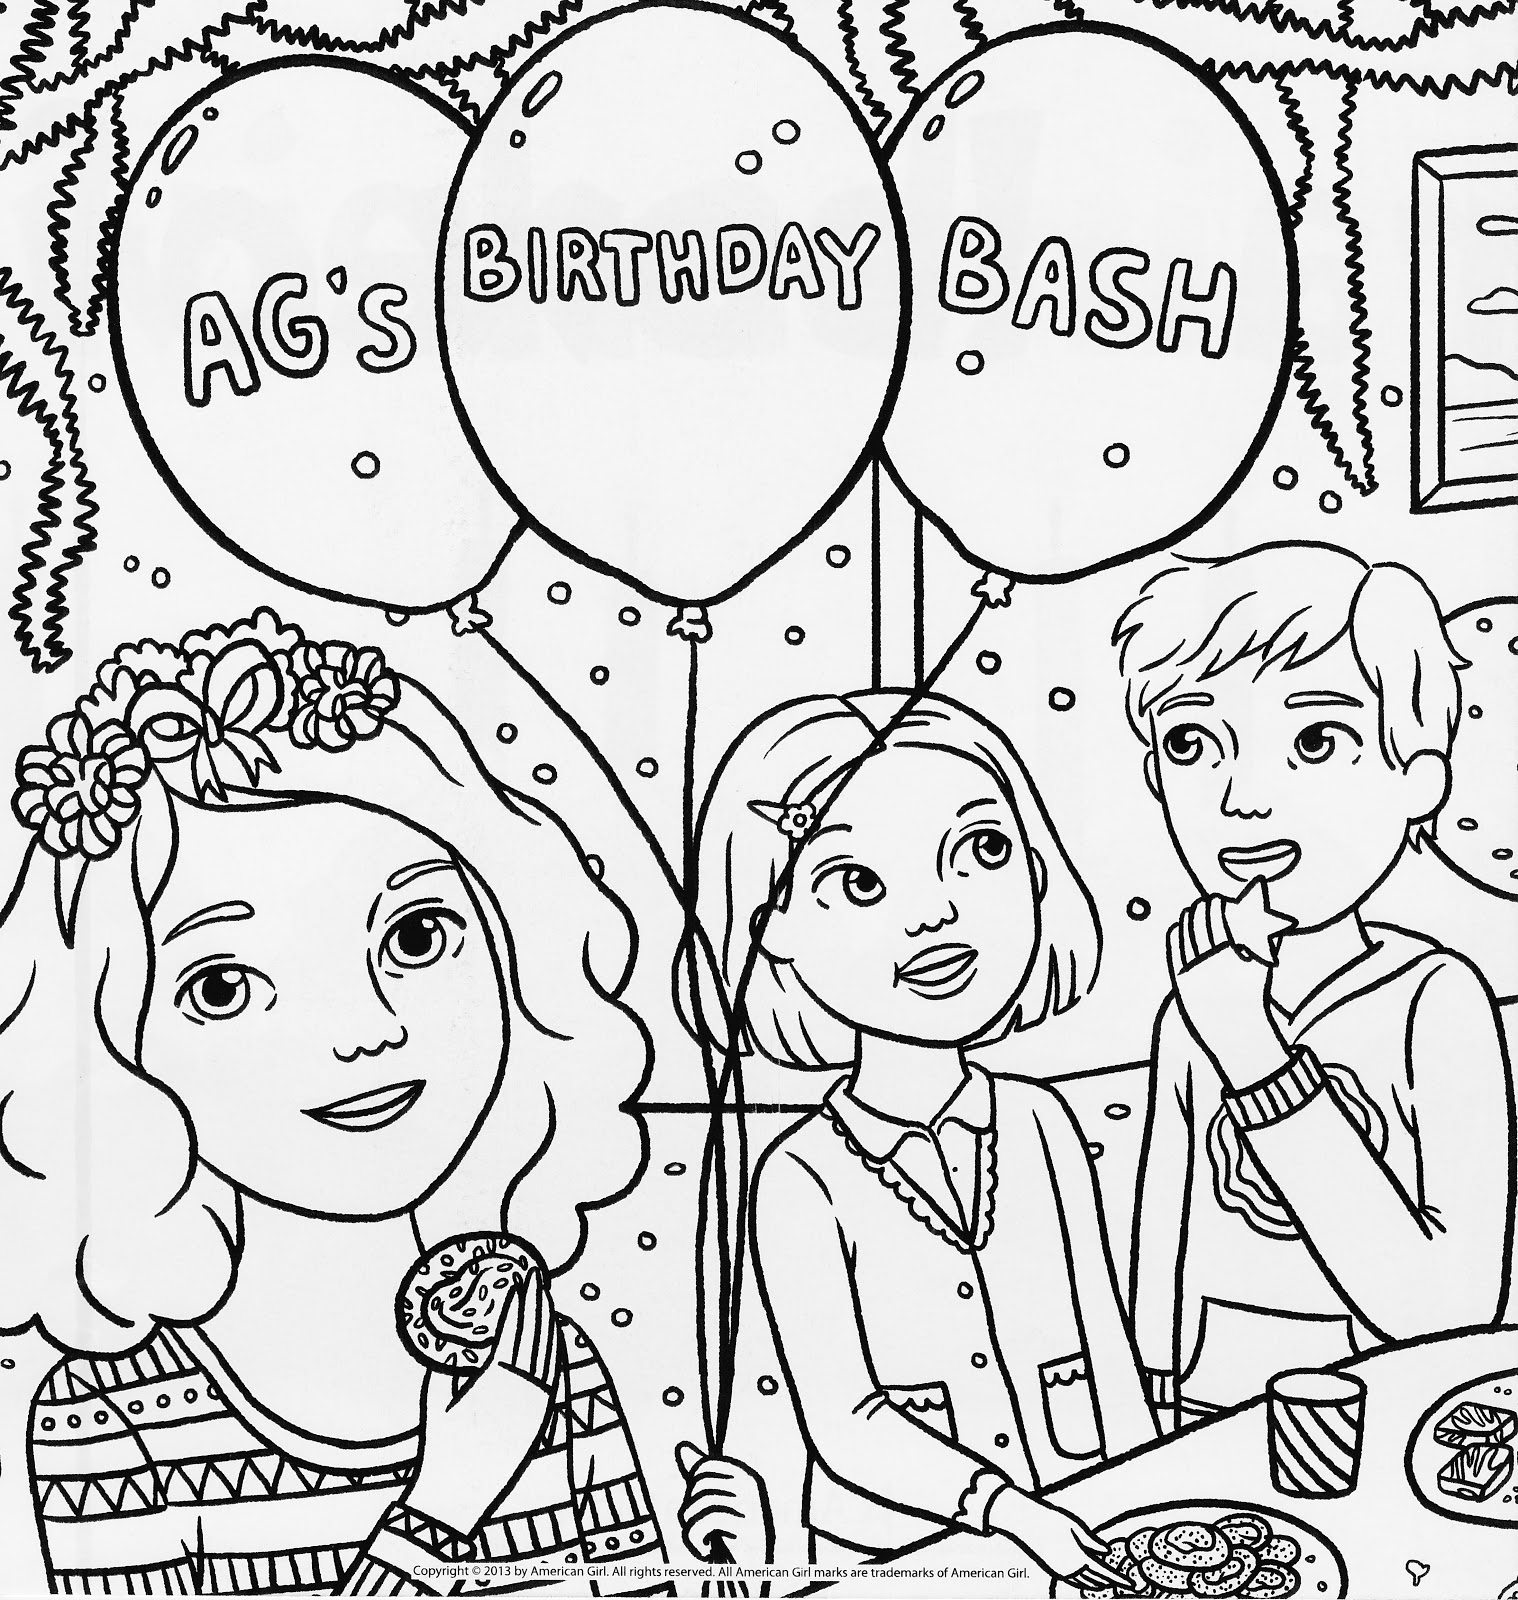 American Girl Doll Birthday Party Coloring Pages